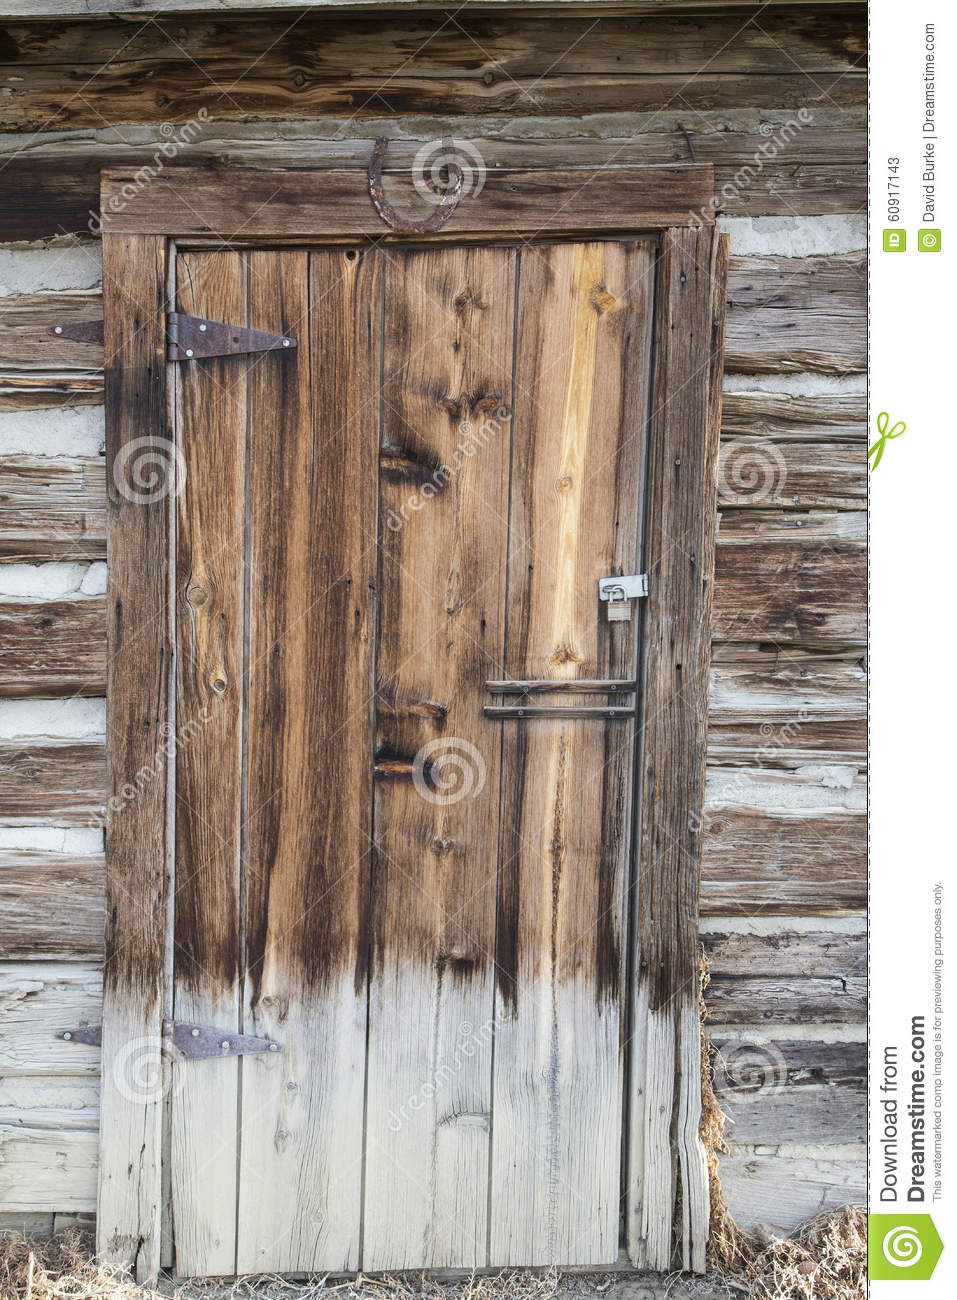 Vintage Wooden Cabin Door Stock Photo - Image: 60917143